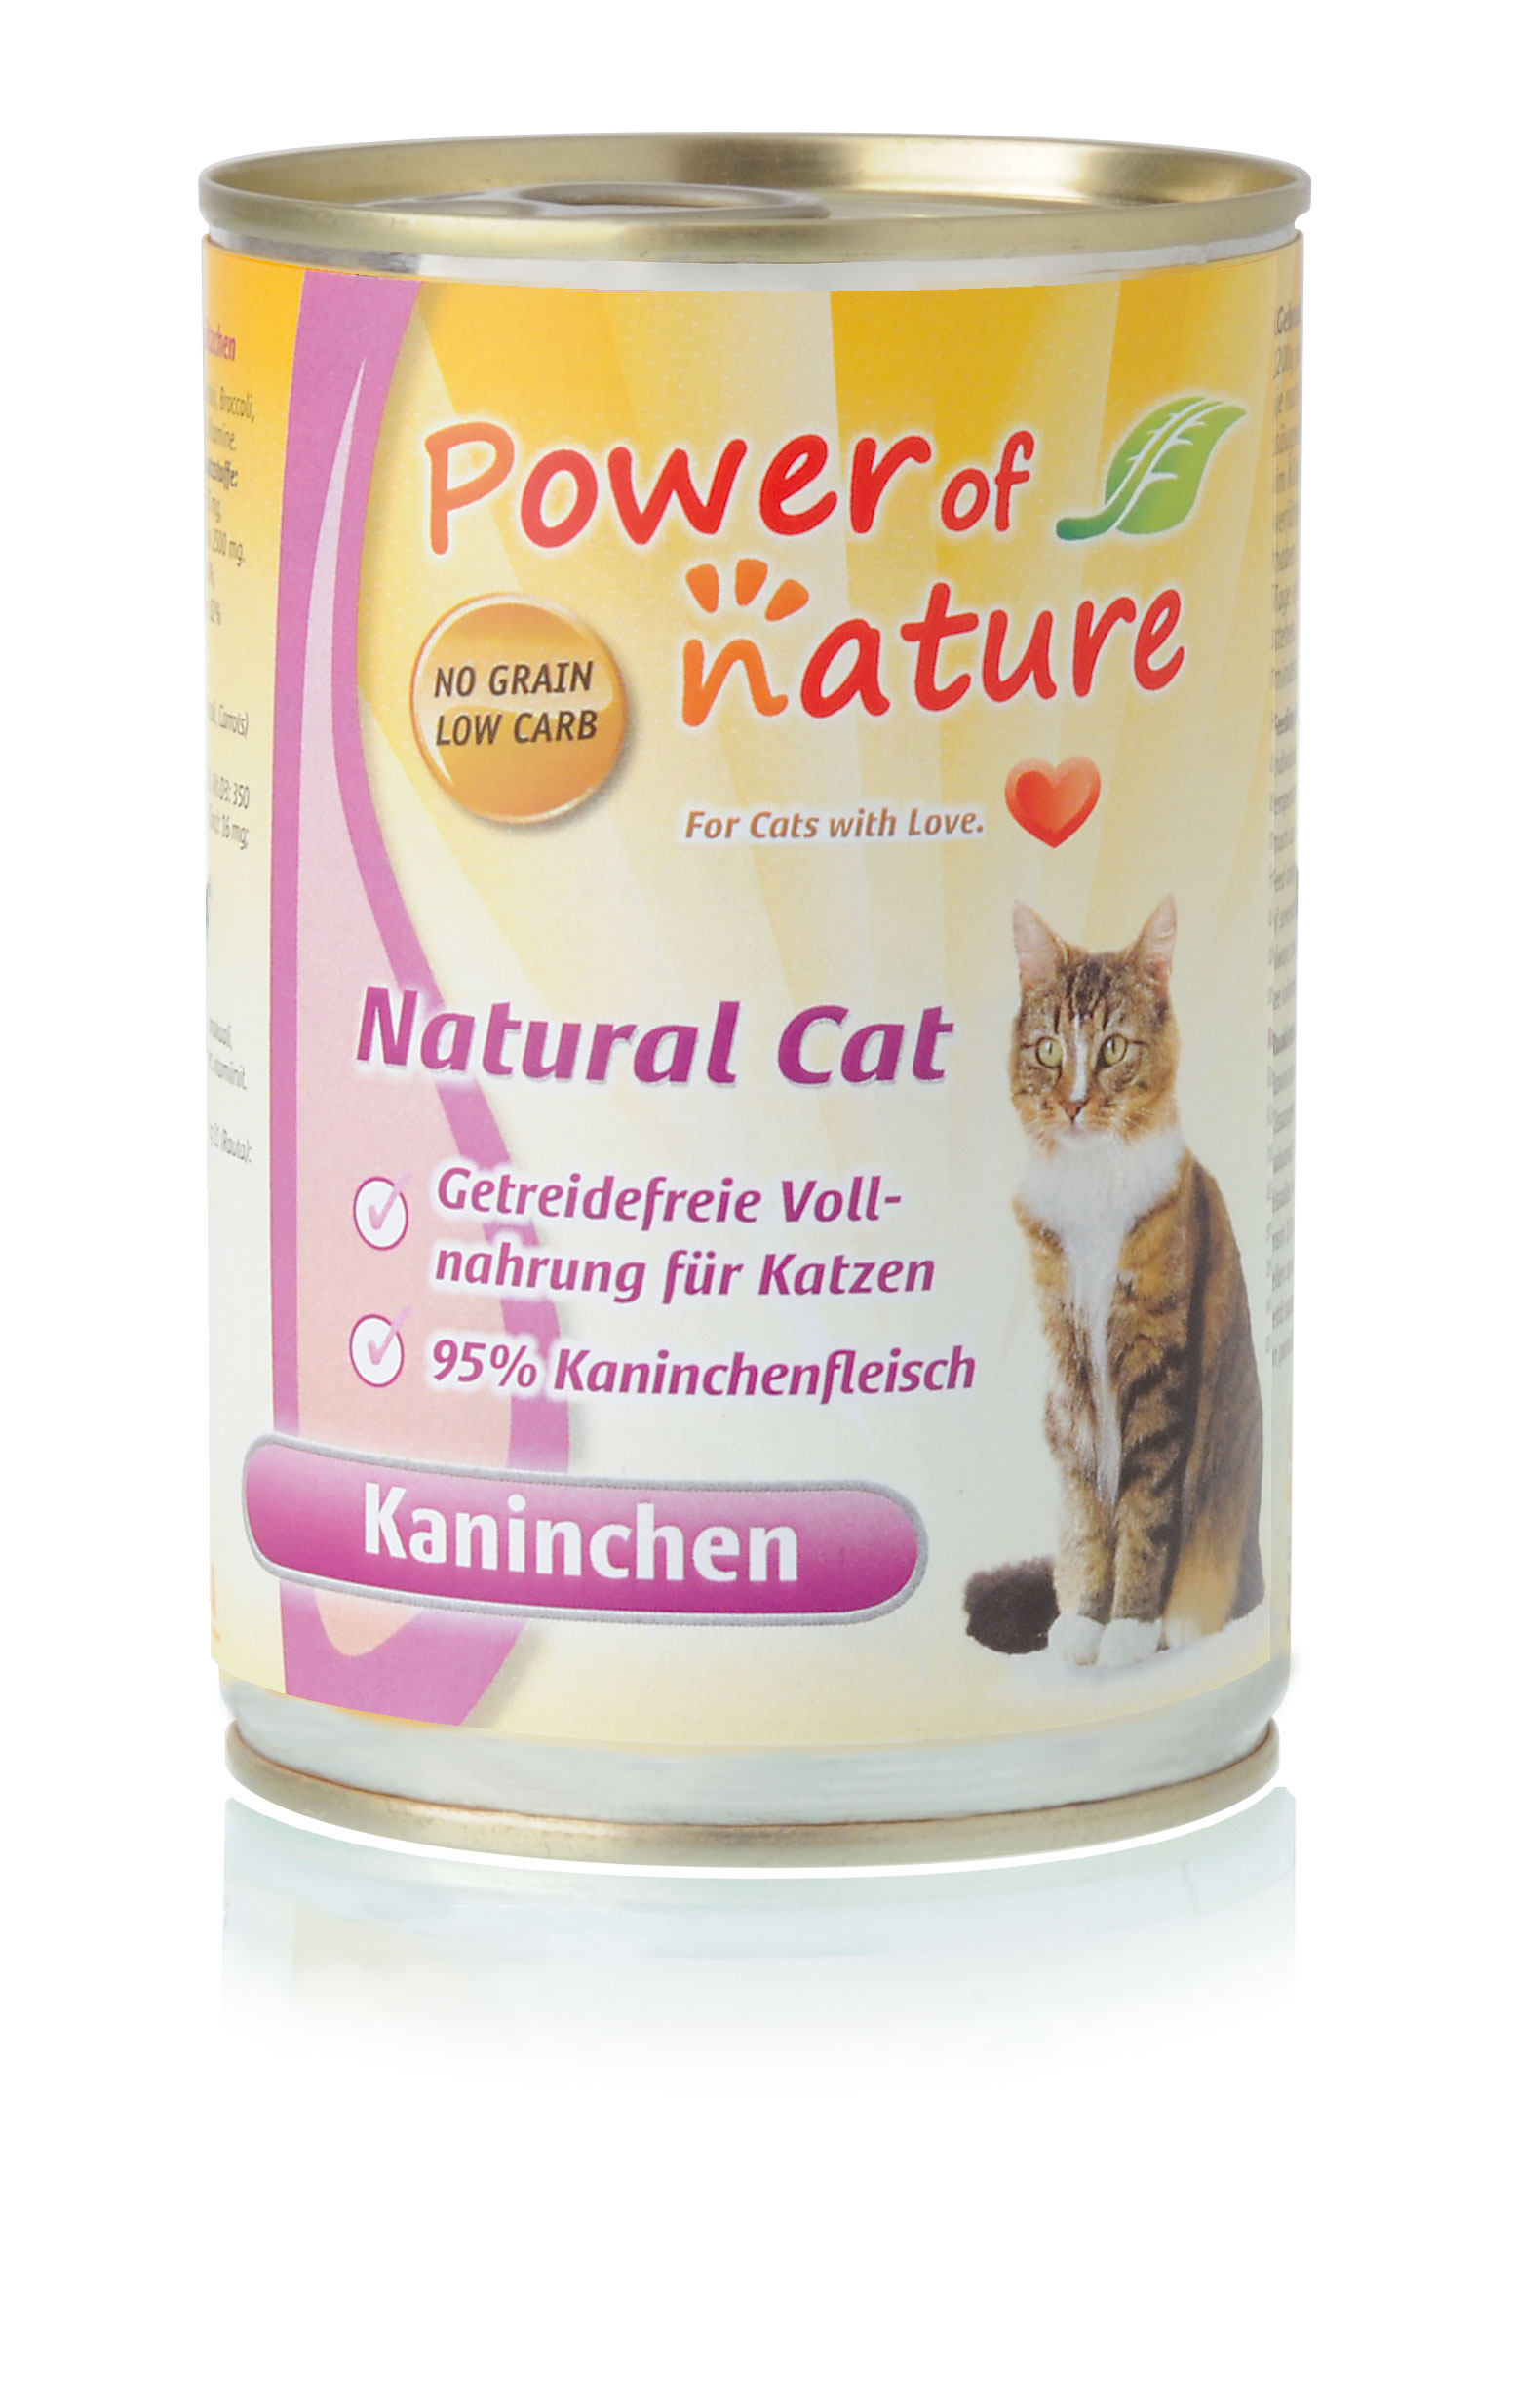 Power of Nature Natural Cat Dose Kaninchen 400g